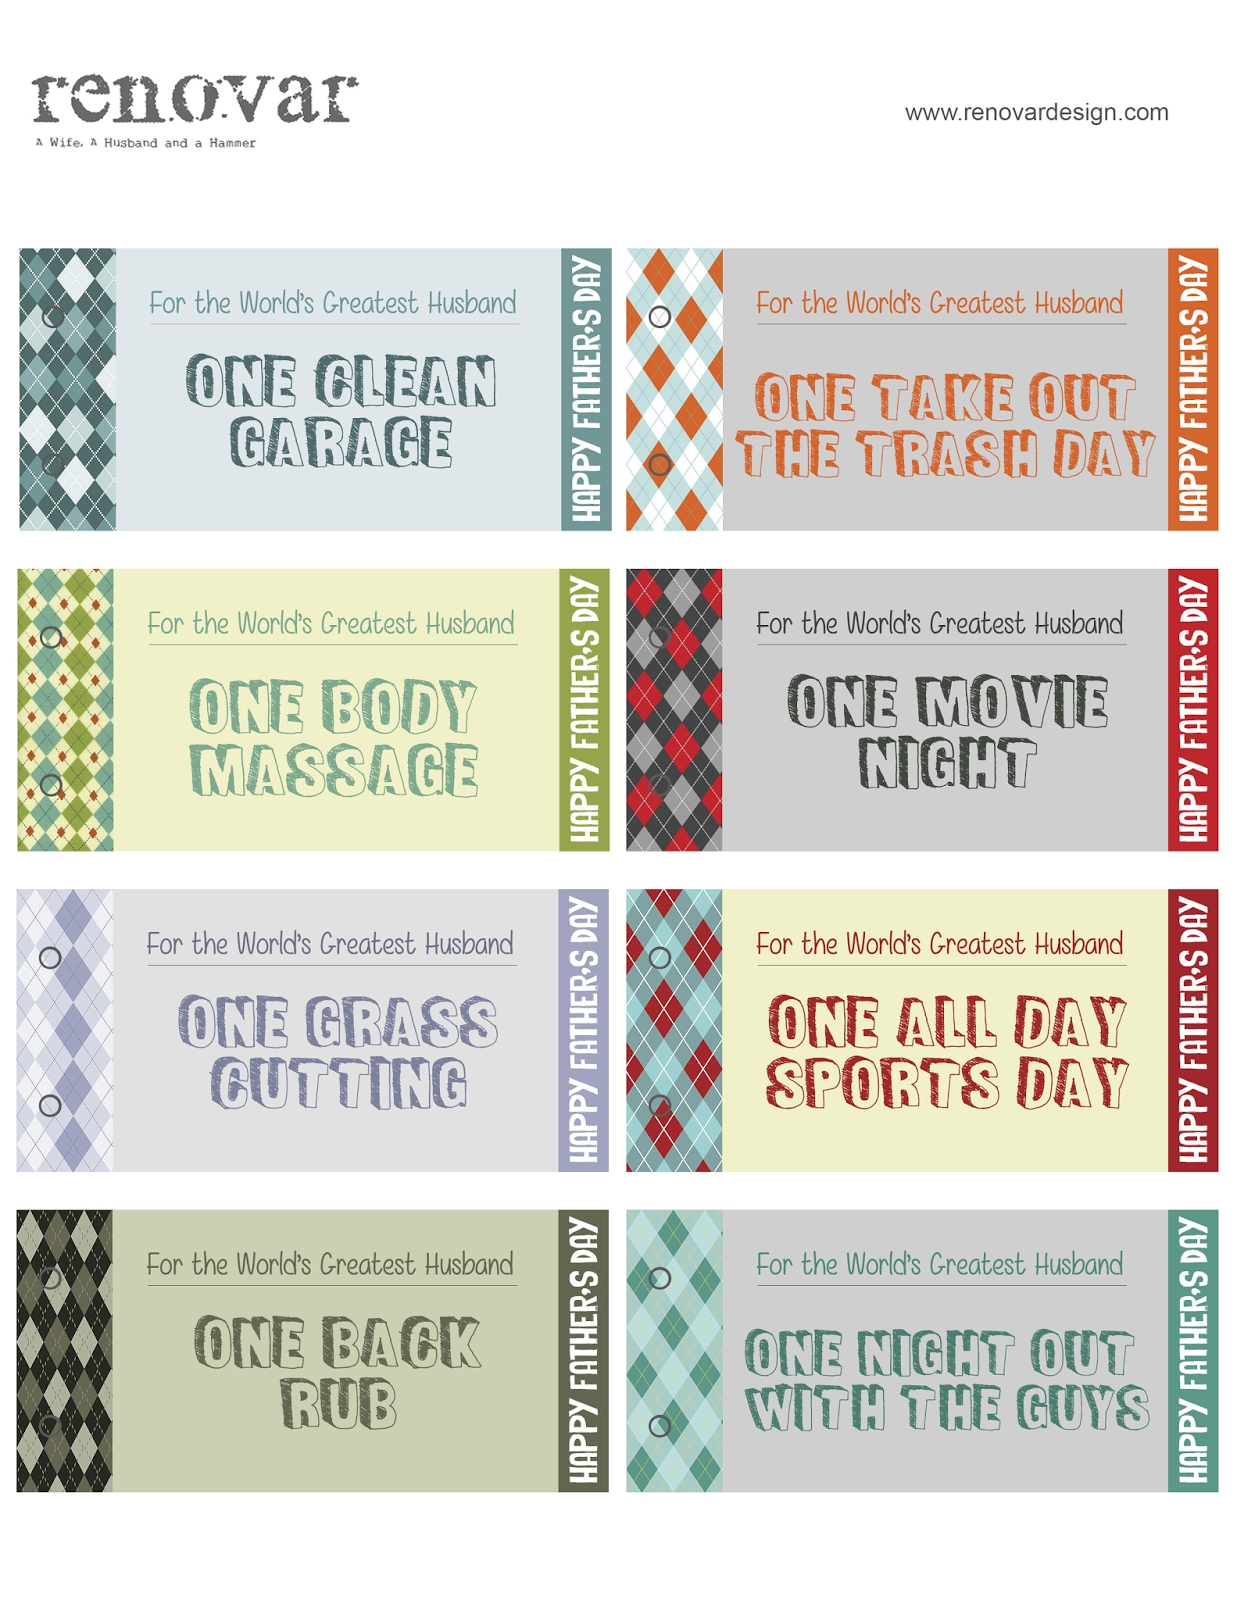 10 Attractive Valentine Coupon Book Ideas For Guys wife coupon book template couriers please coupon calculator